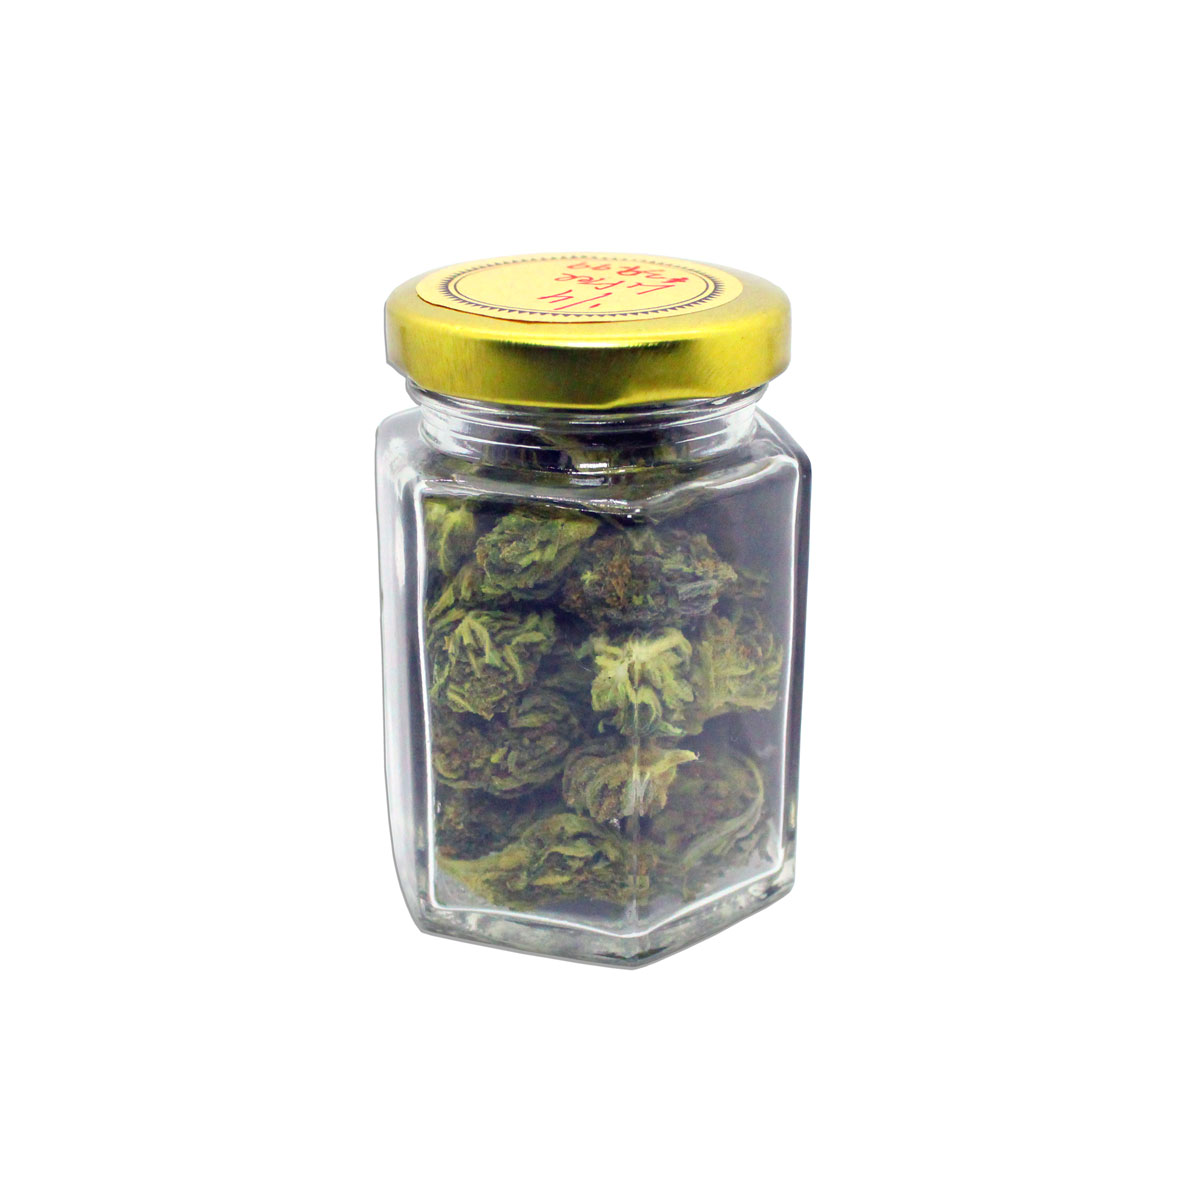 3D-medical-hemp-flower-in-glass-clear